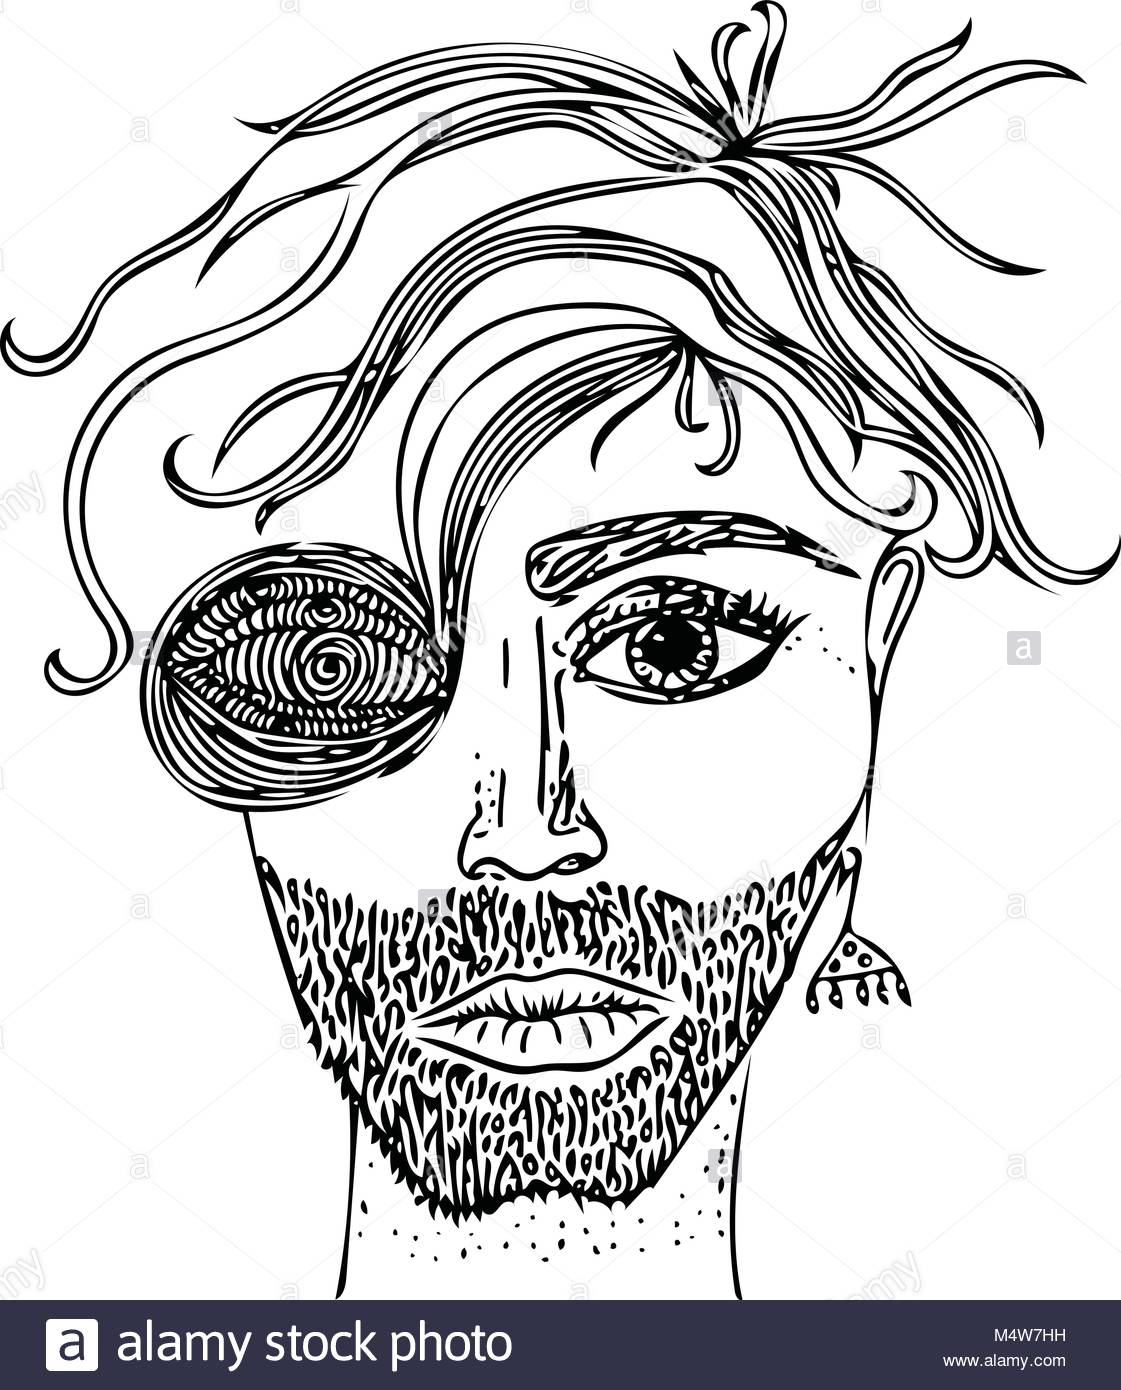 1121x1390 Sketch Fantasy Portrait Of Male Face. Vector Image, Drawn By Hand